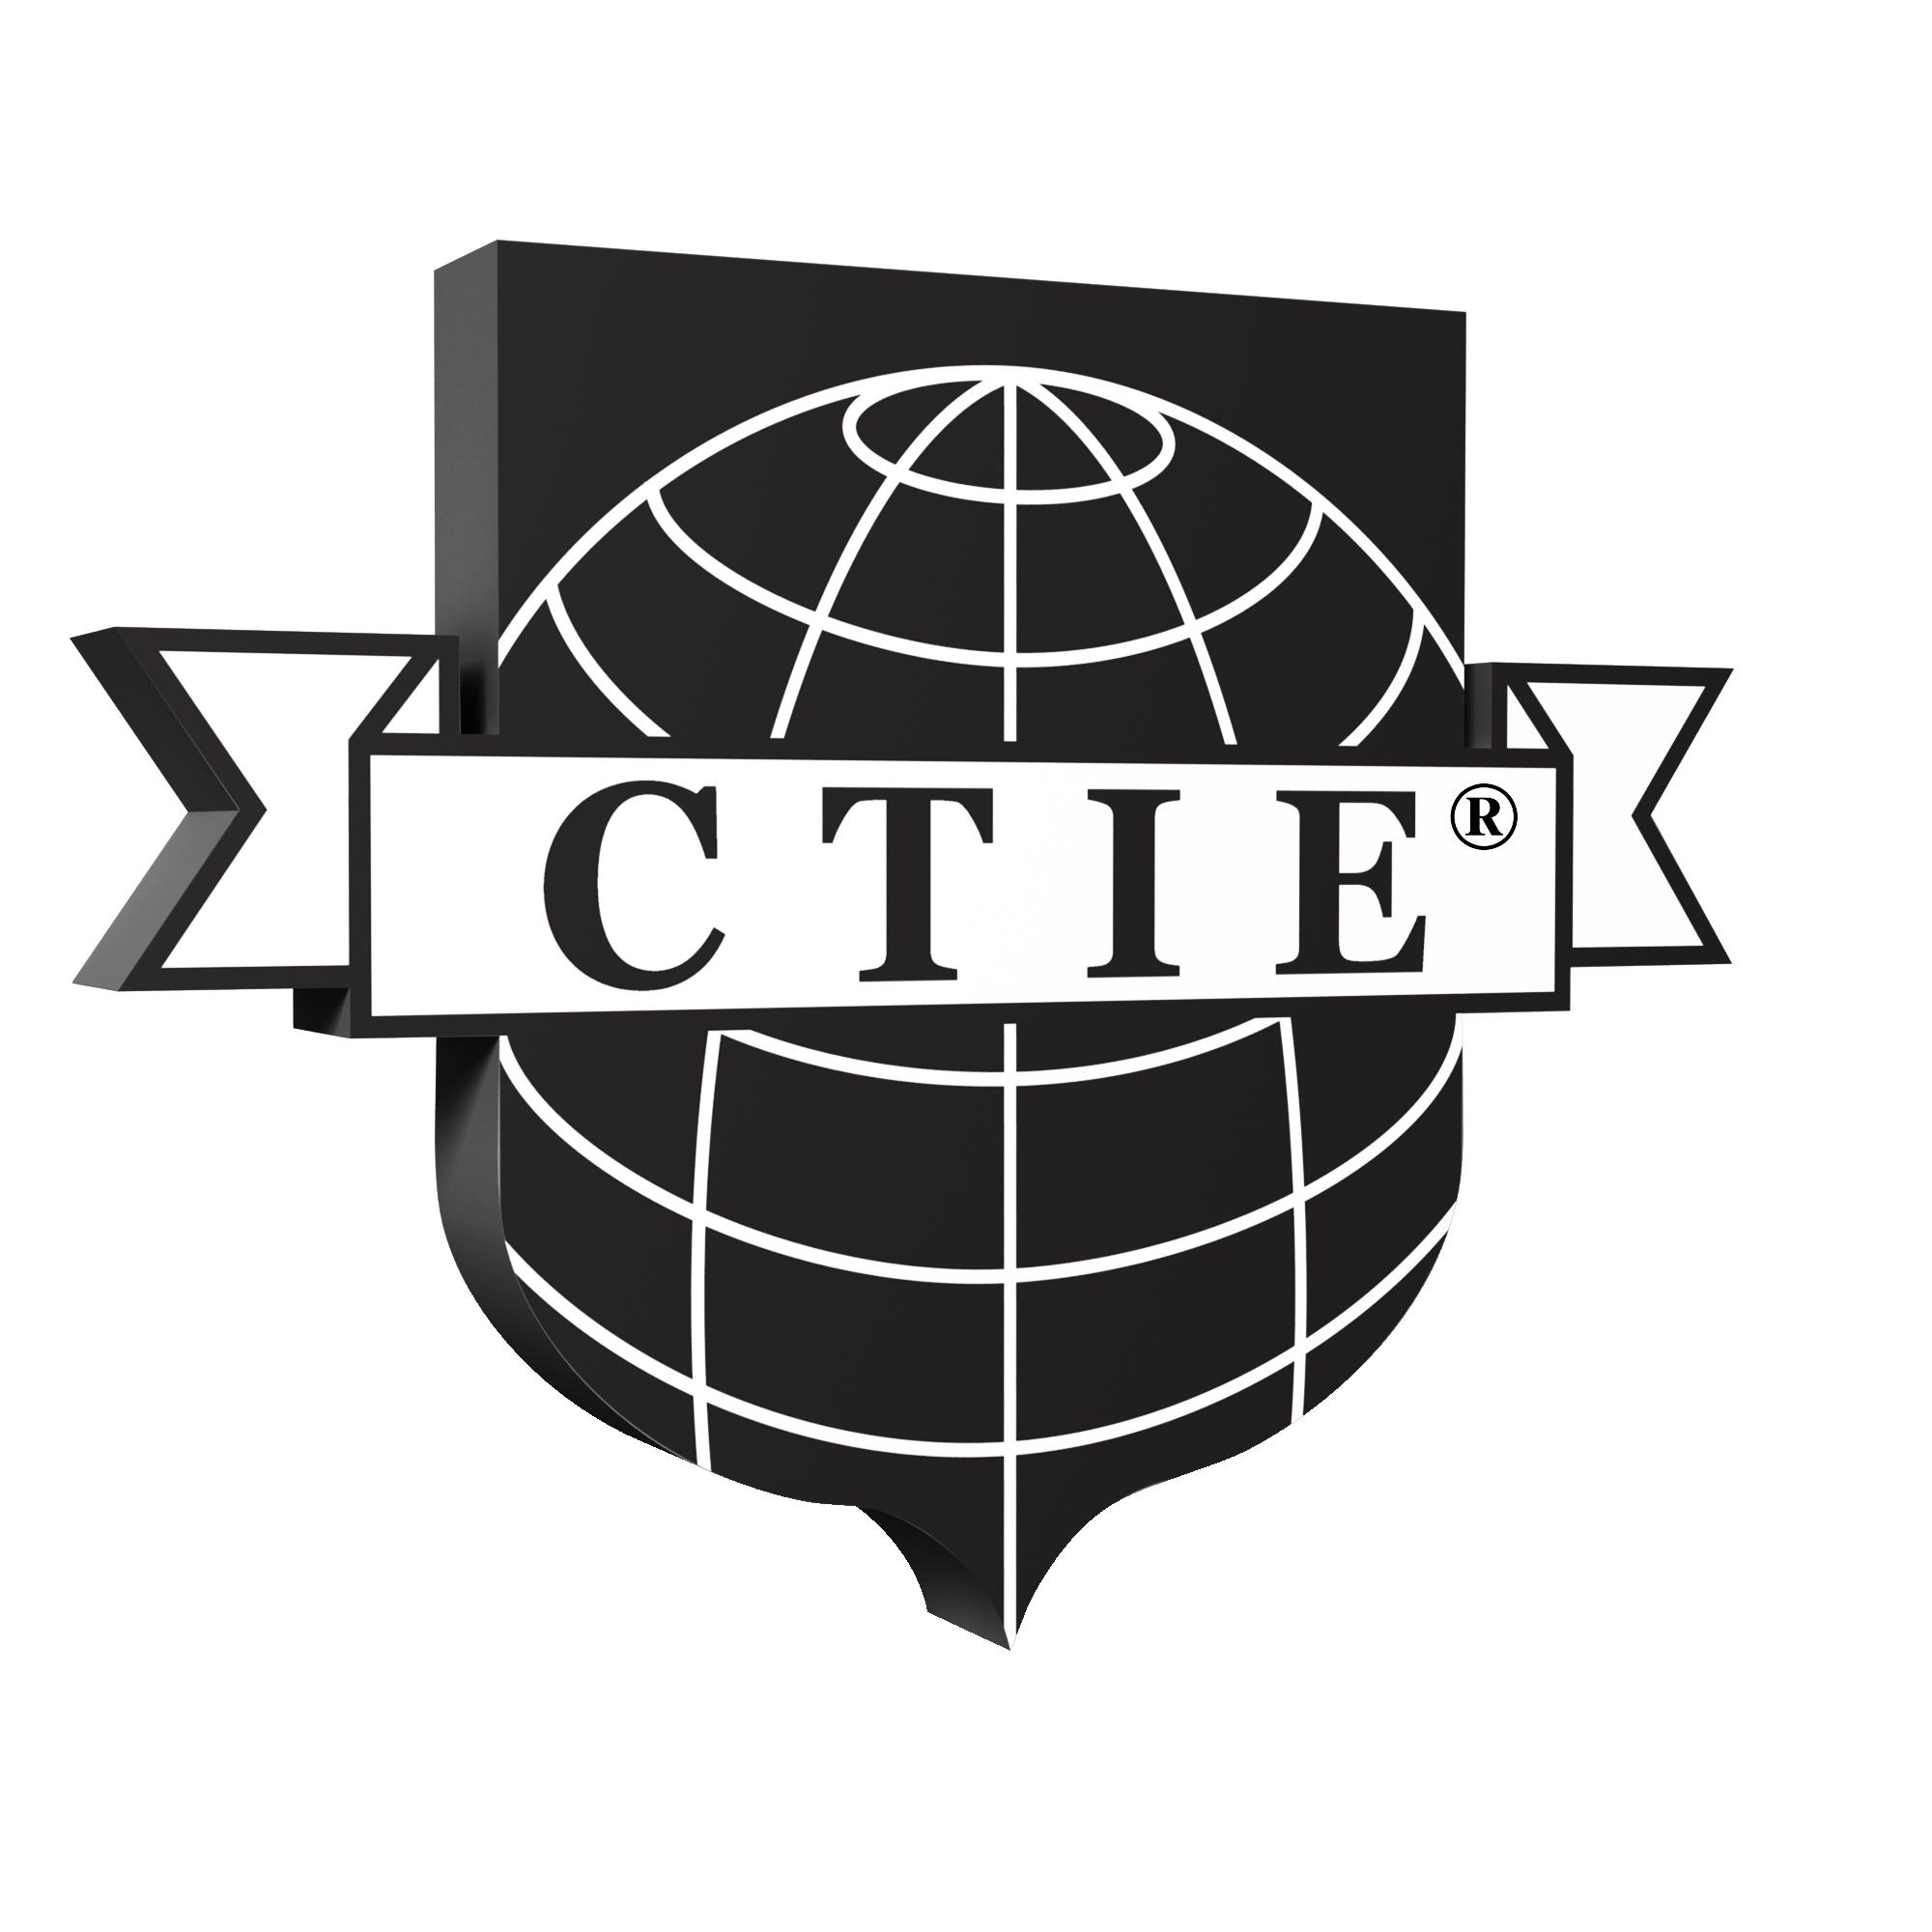 Certified Travel Industry Executive - CTIE® Graduate - CTIE® Graduate - CTIE® Graduate